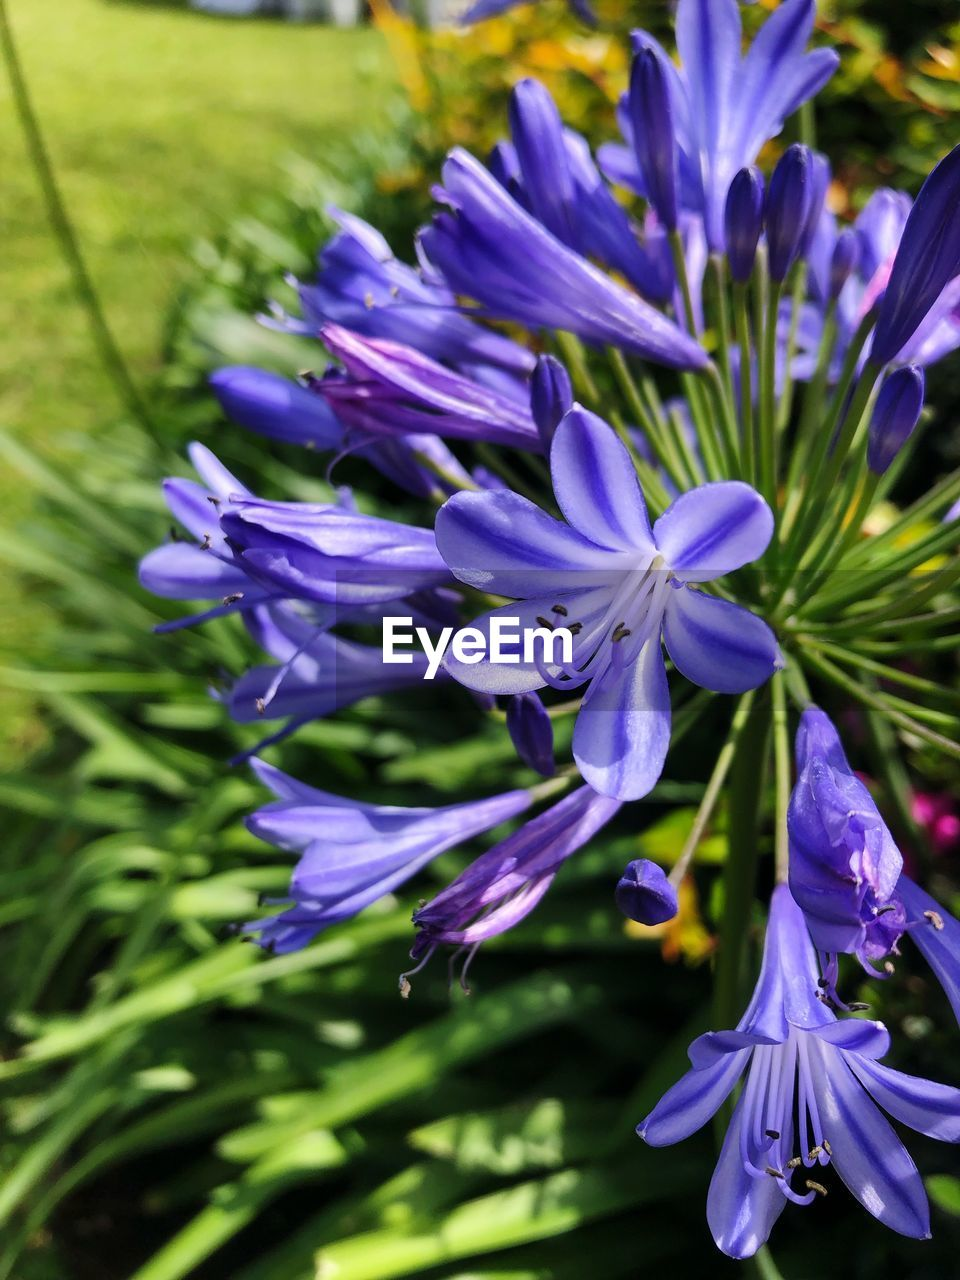 flowering plant, flower, purple, plant, fragility, vulnerability, beauty in nature, growth, freshness, petal, nature, inflorescence, close-up, flower head, no people, field, focus on foreground, day, blossom, selective focus, spring